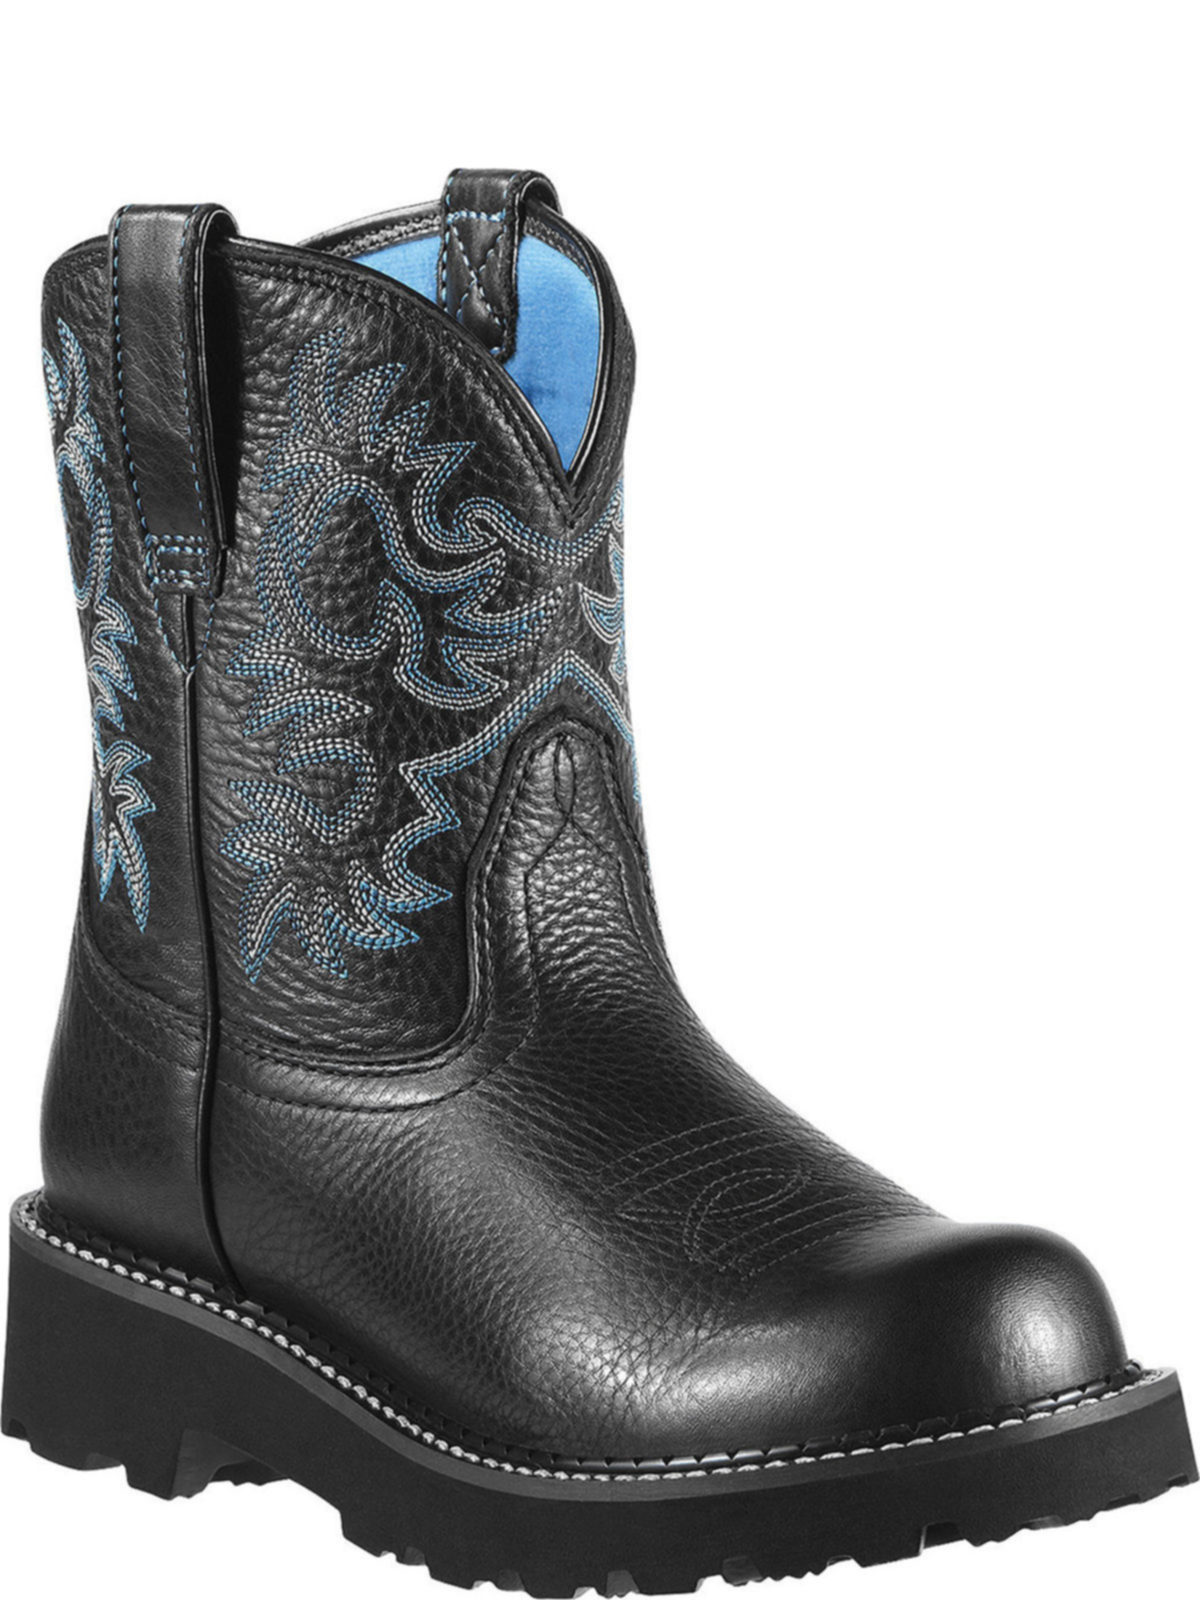 Ariat Sale amp Clearance  Ariat Clothing Apparel and